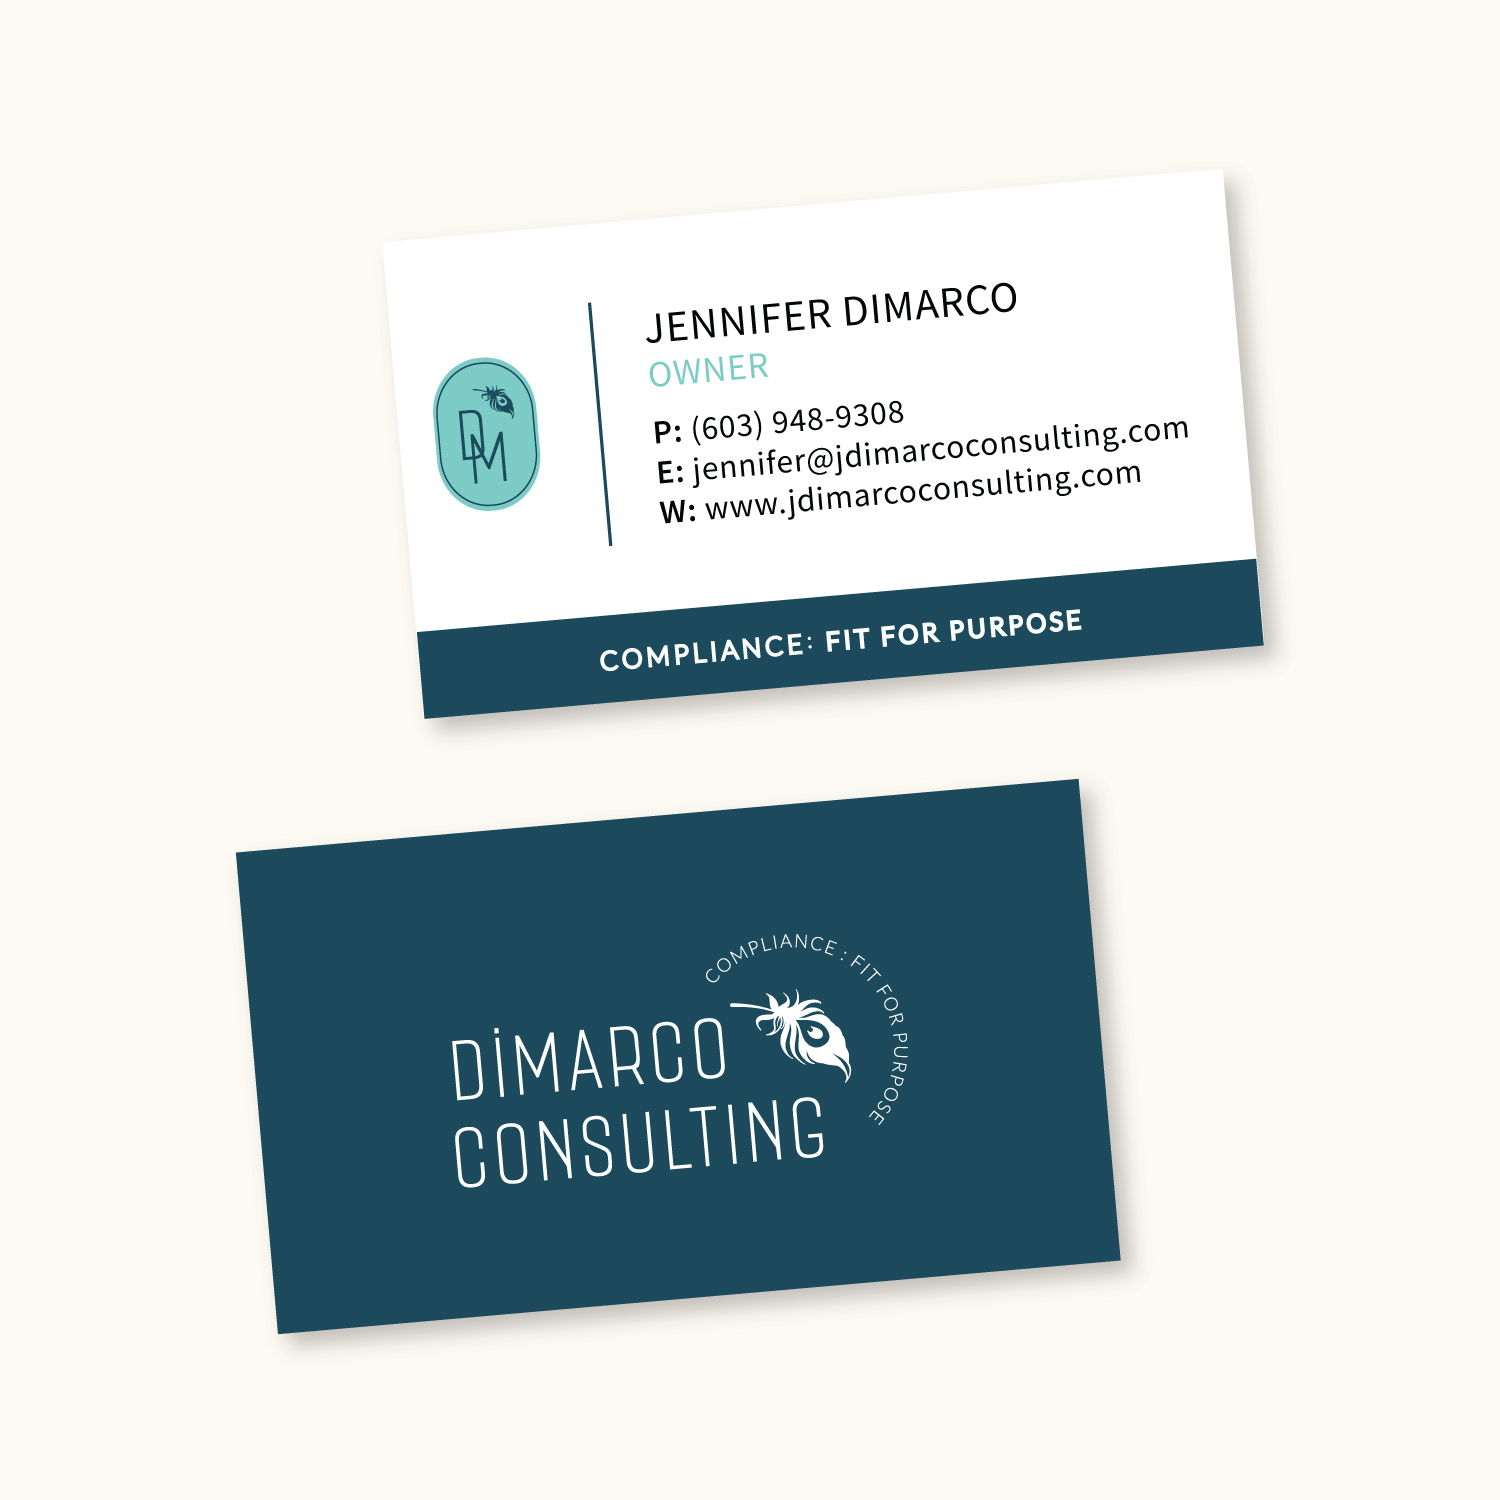 Dimarco business card example